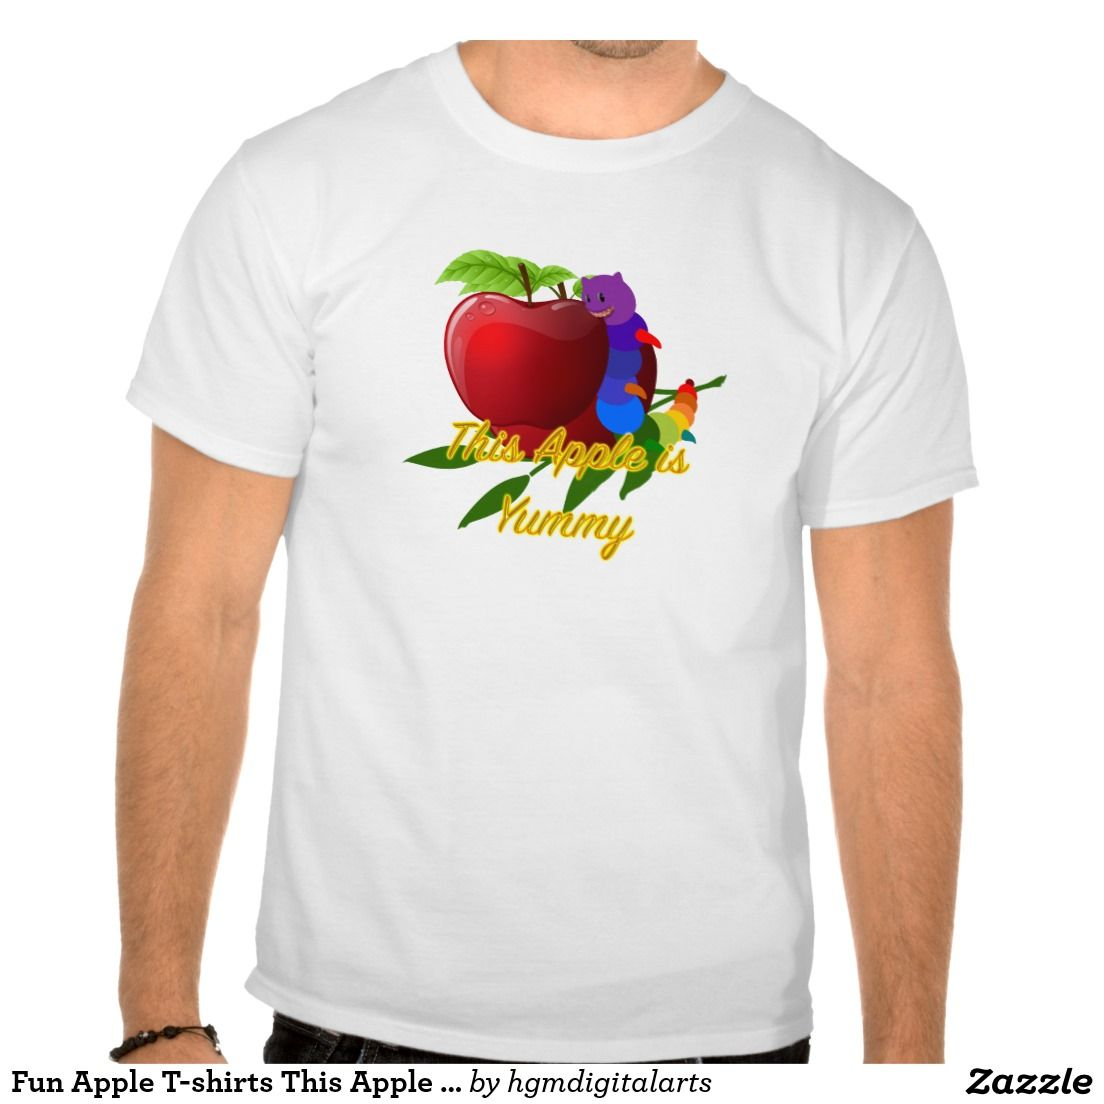 Fun Apple T-shirts This Apple is-Yummy